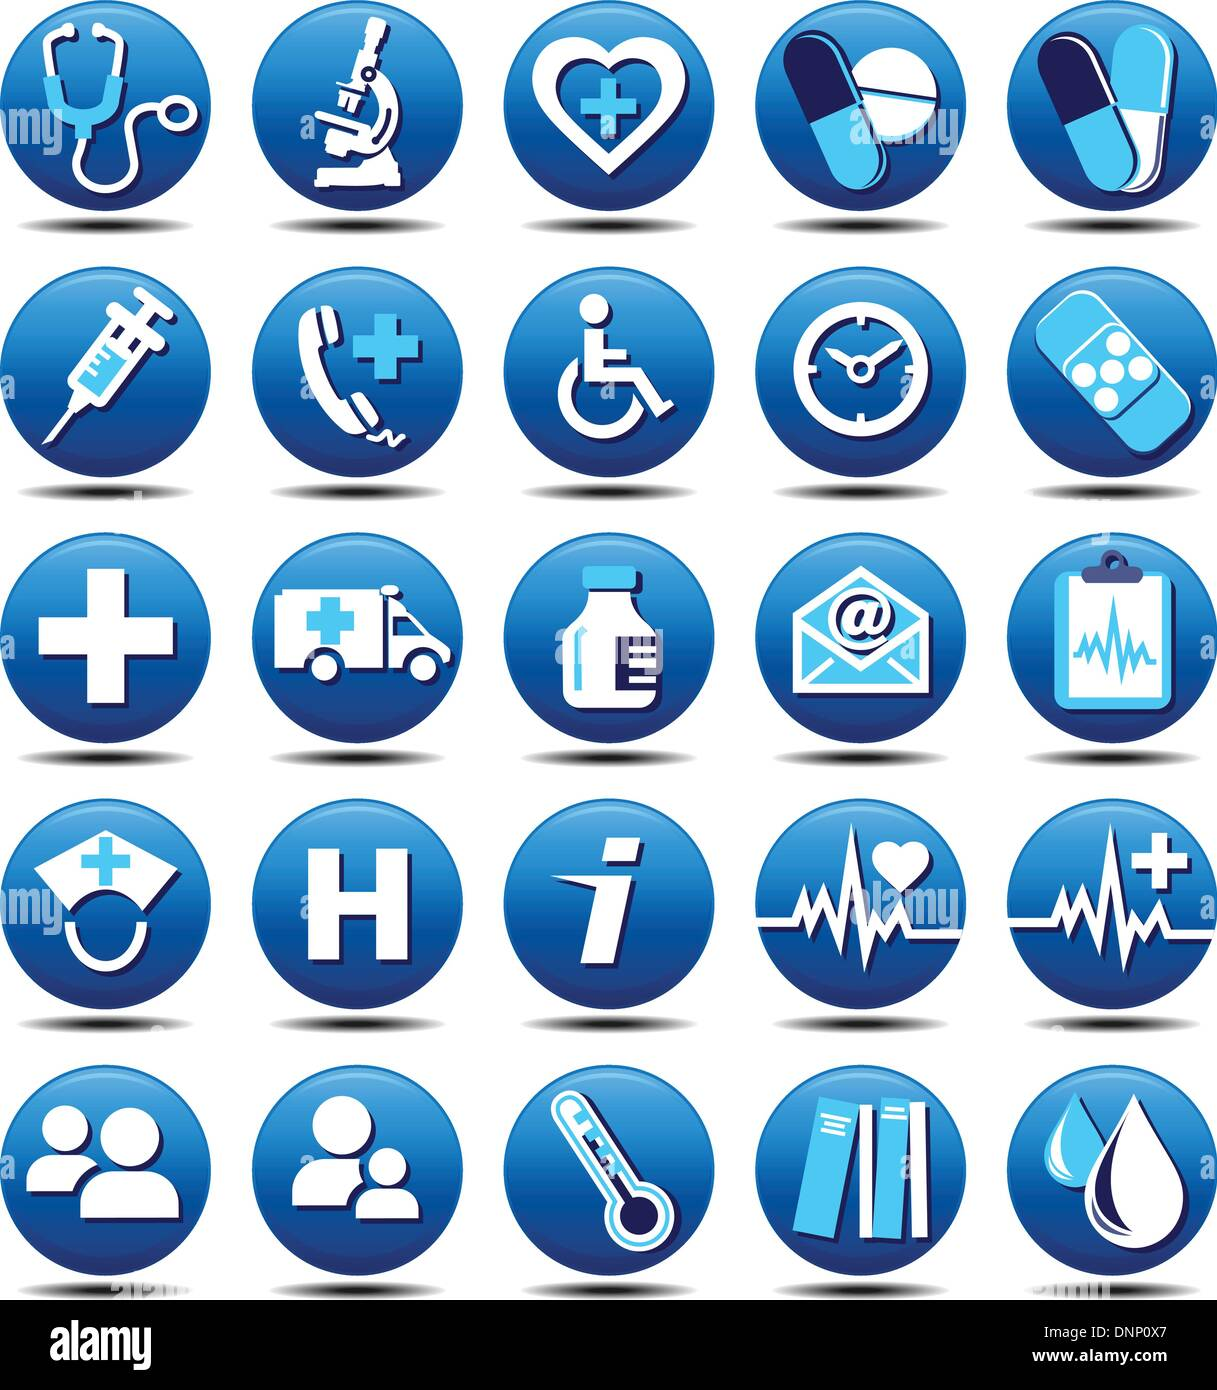 25 Health Care Icons -  health care patient doctor medical medicare hospital emergency  nhs - Stock Vector